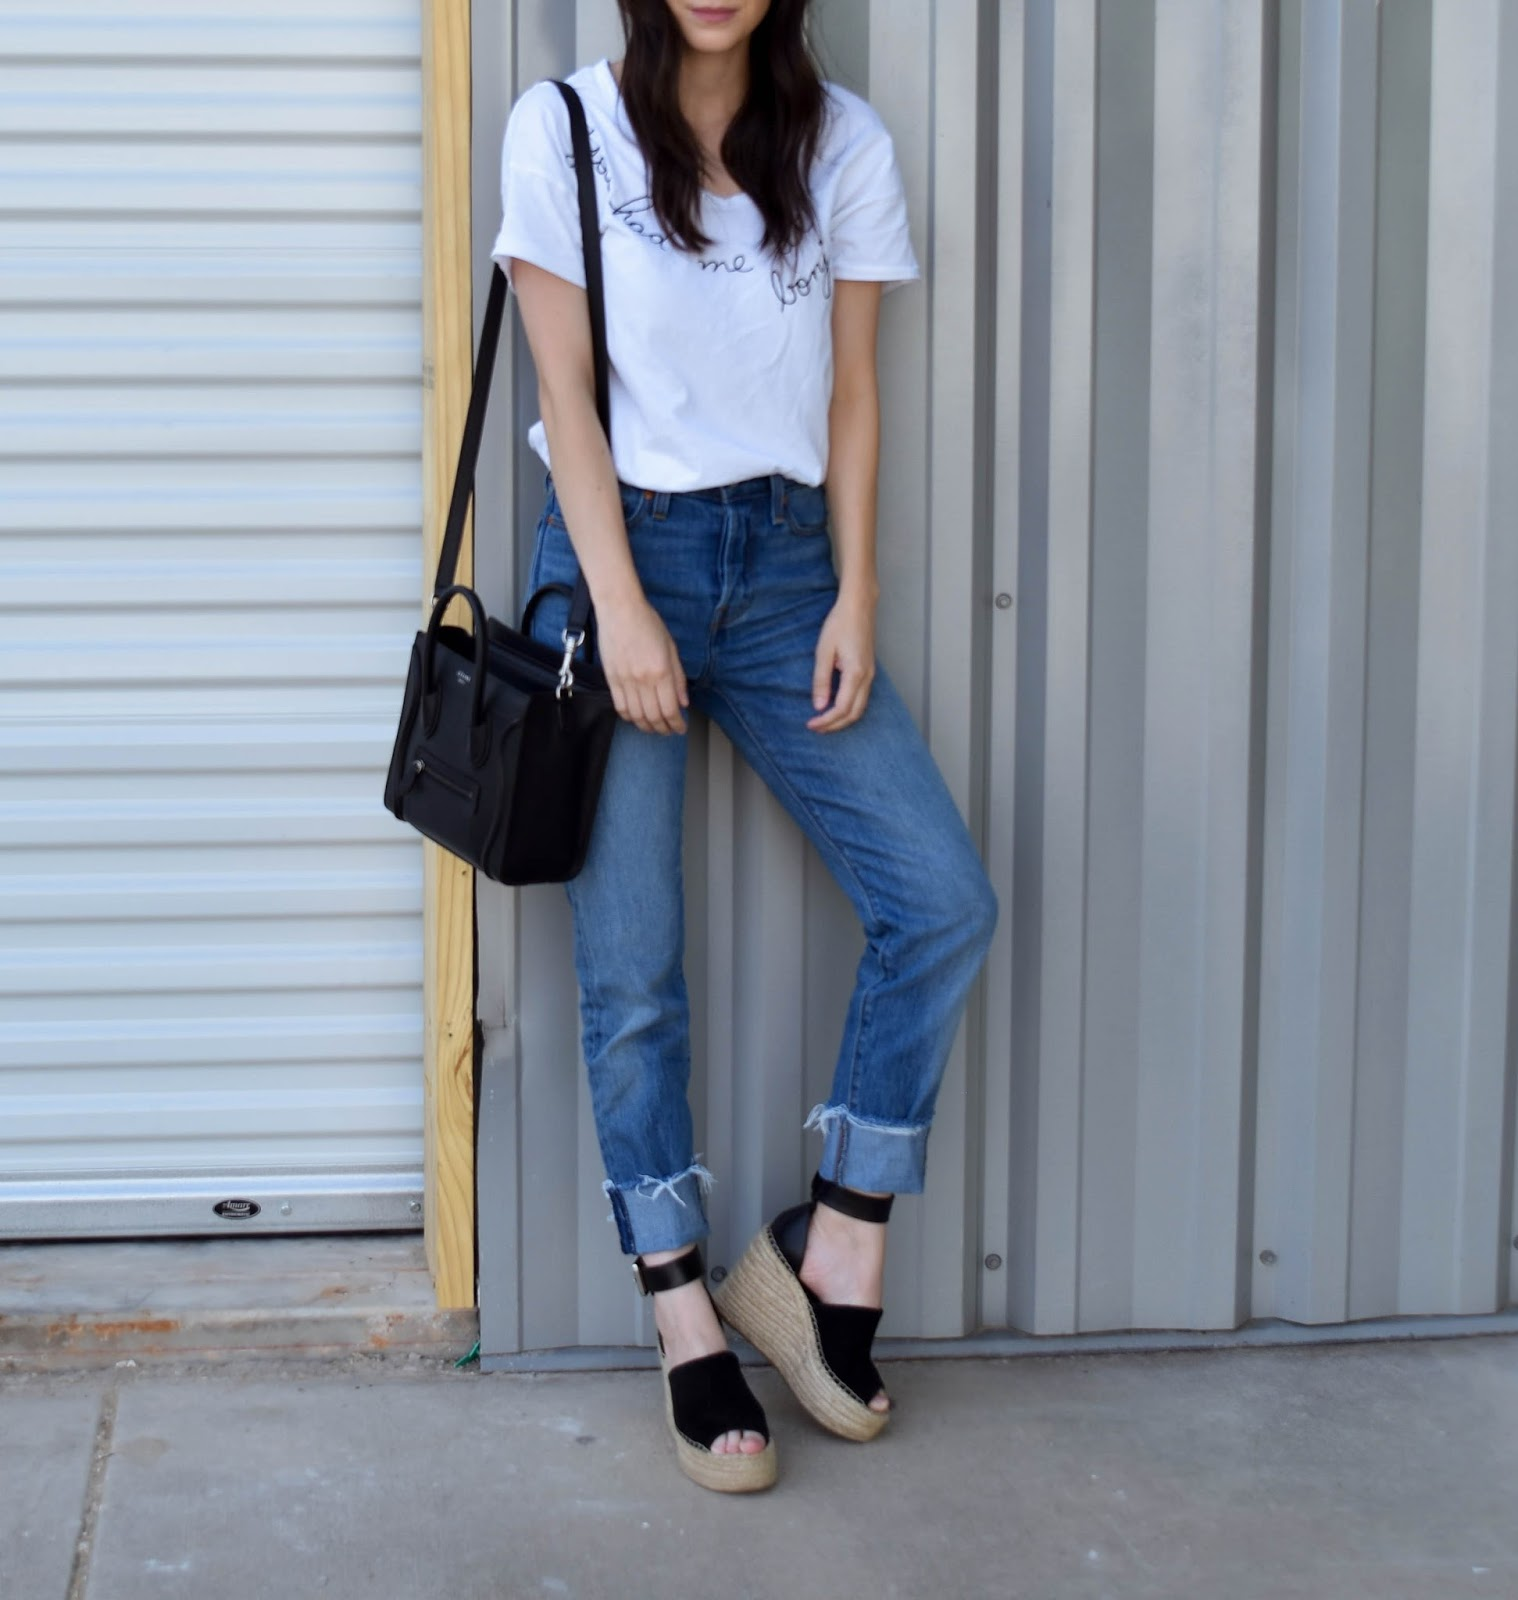 Casual jeans and tee outfit